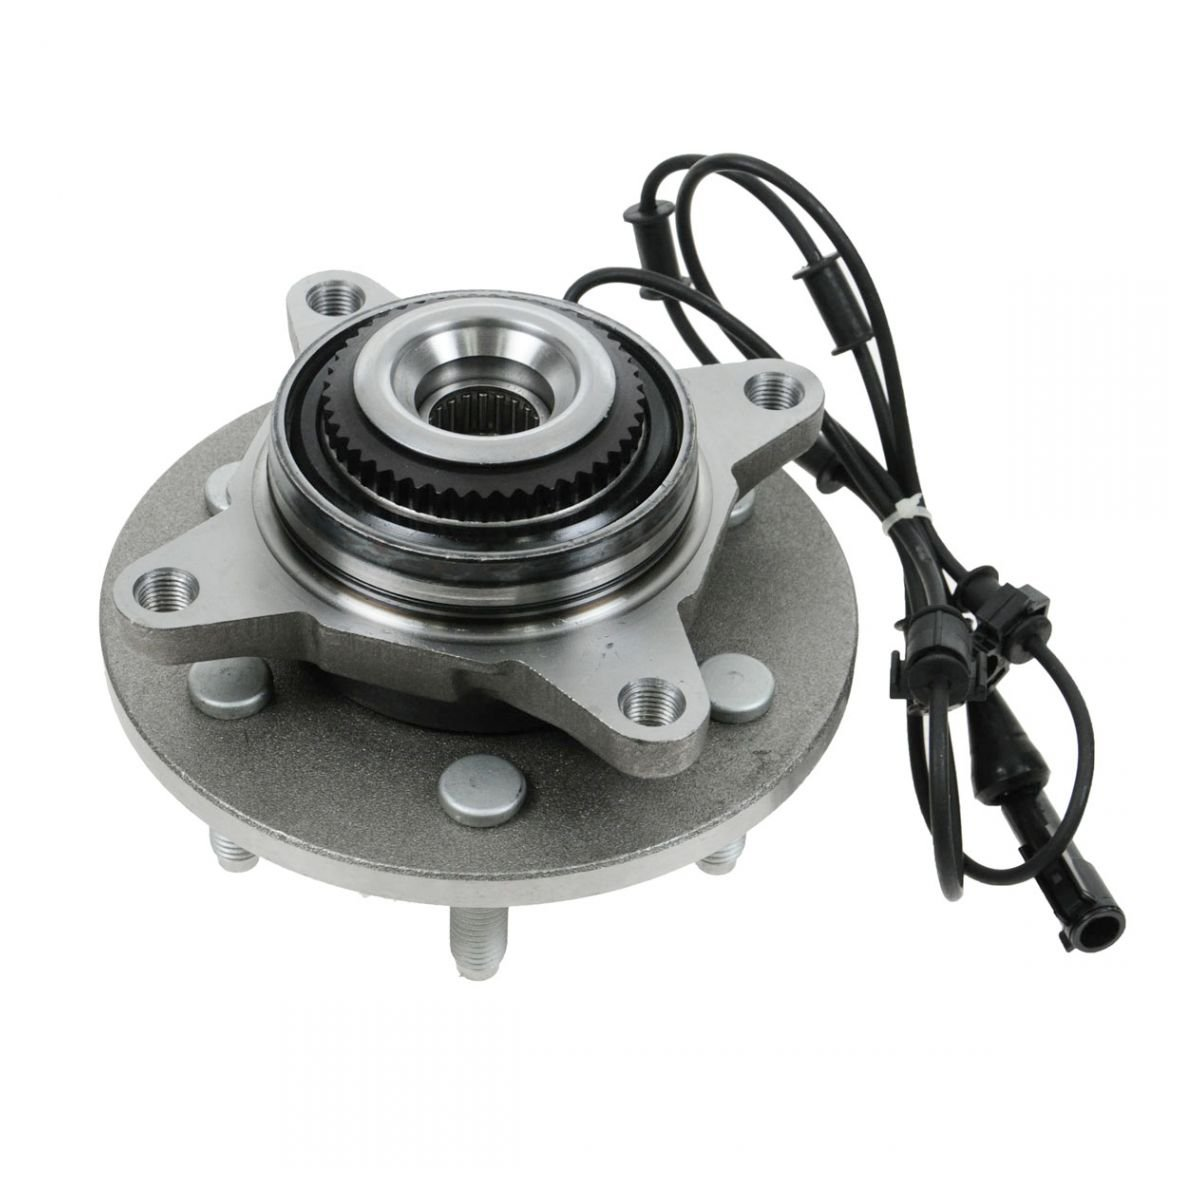 Front Wheel Hub & Bearing for 03-06 Ford Expedition Navigator 4x4 w/ABS by AM Autoparts